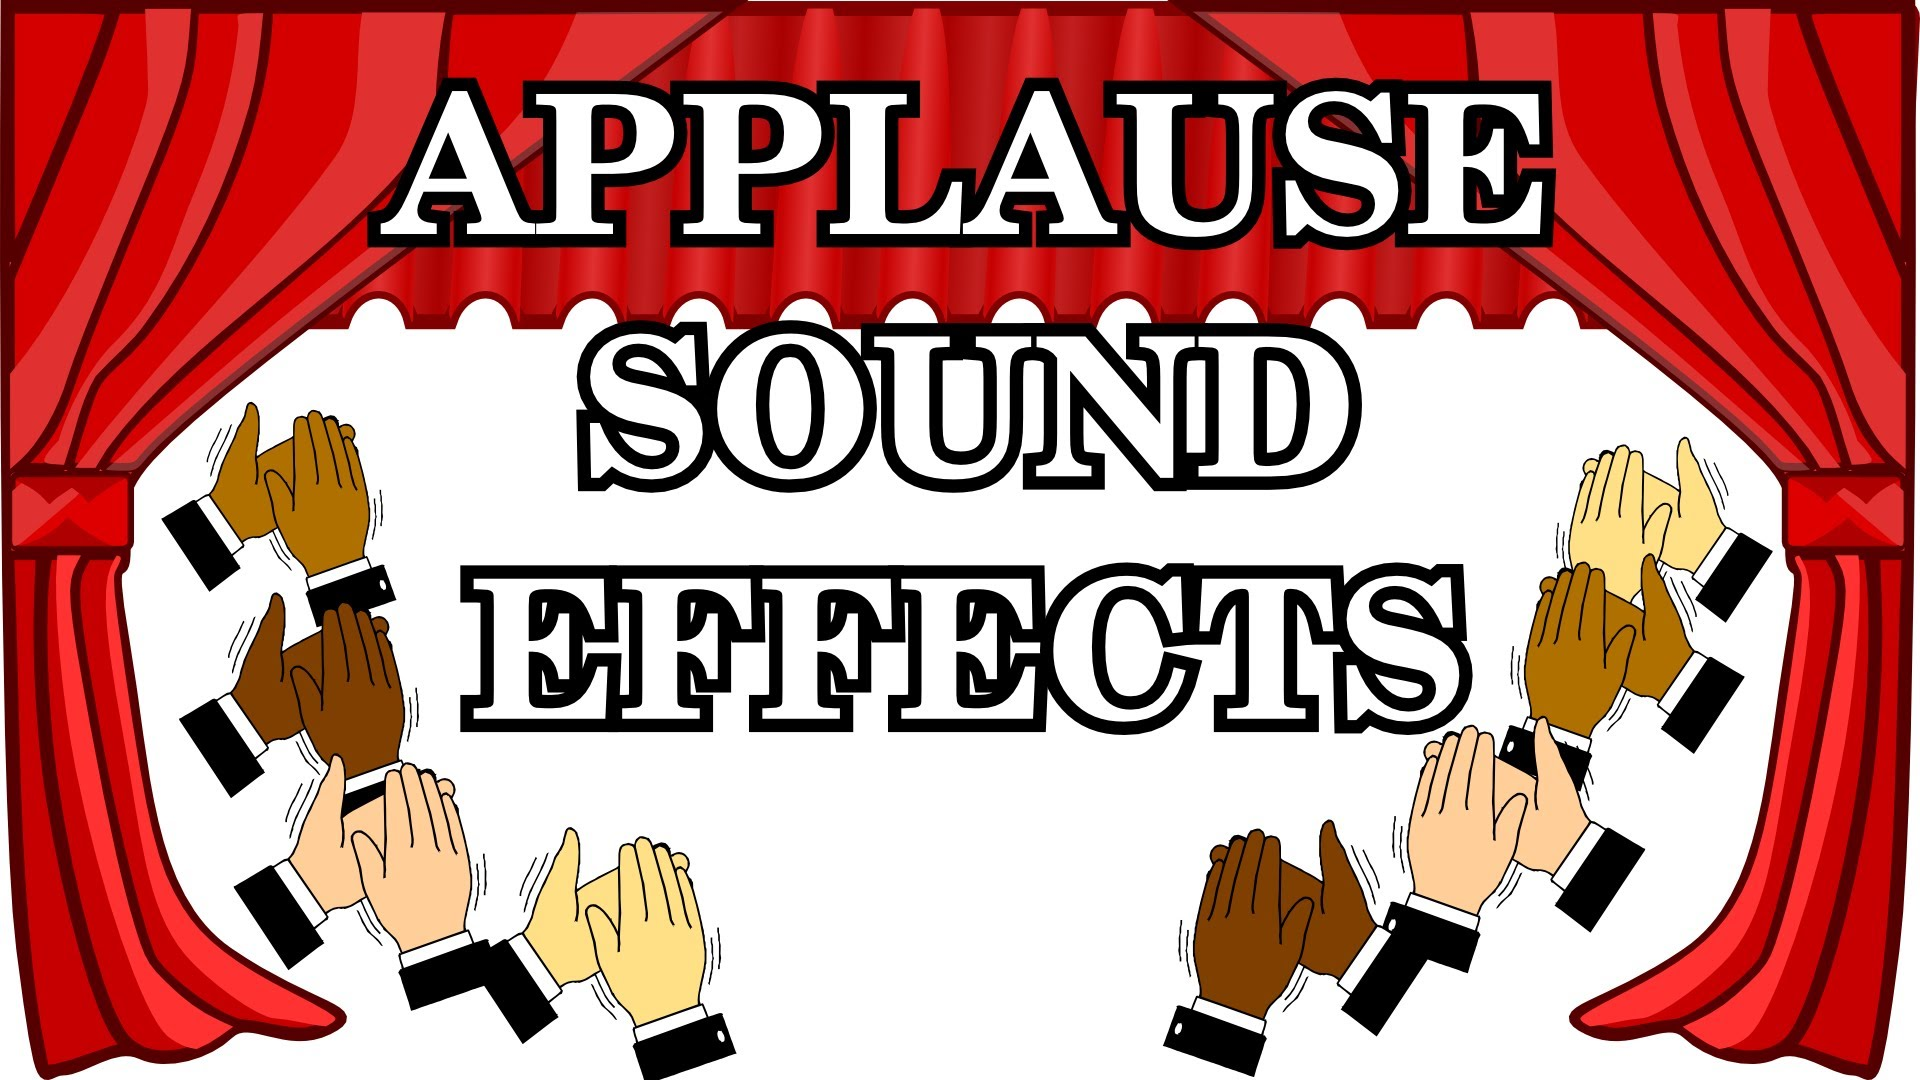 Applause clipart sound effect. Effects